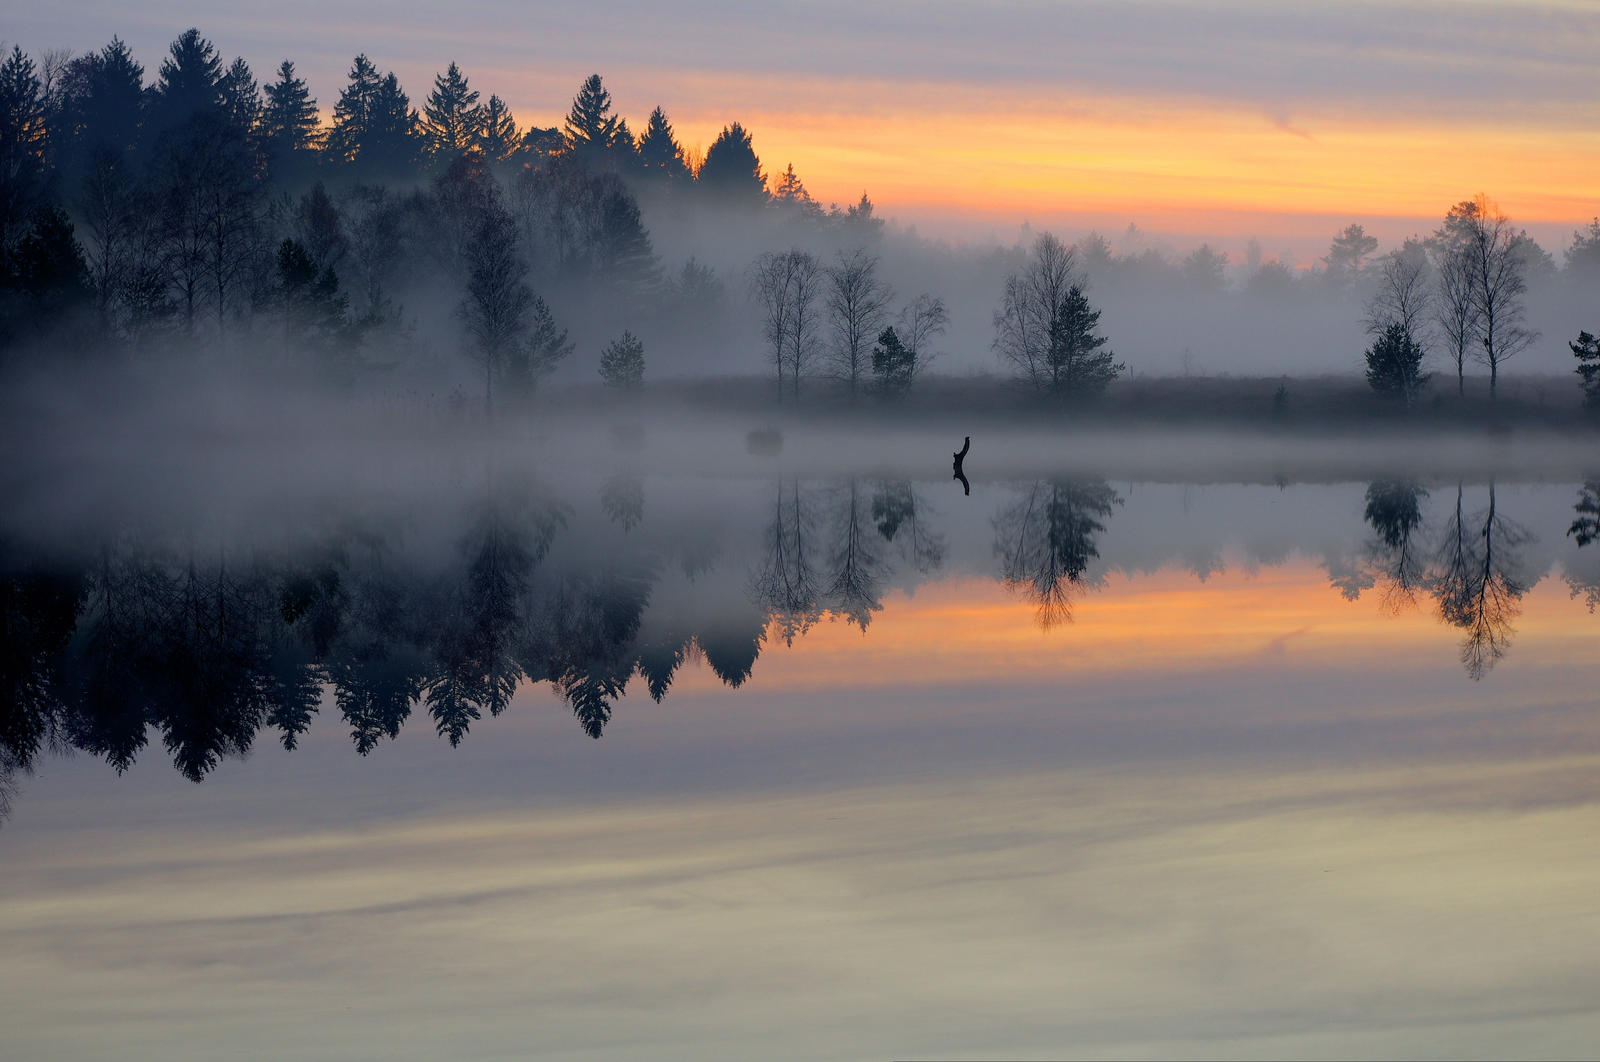 Misty Lake by Burtn